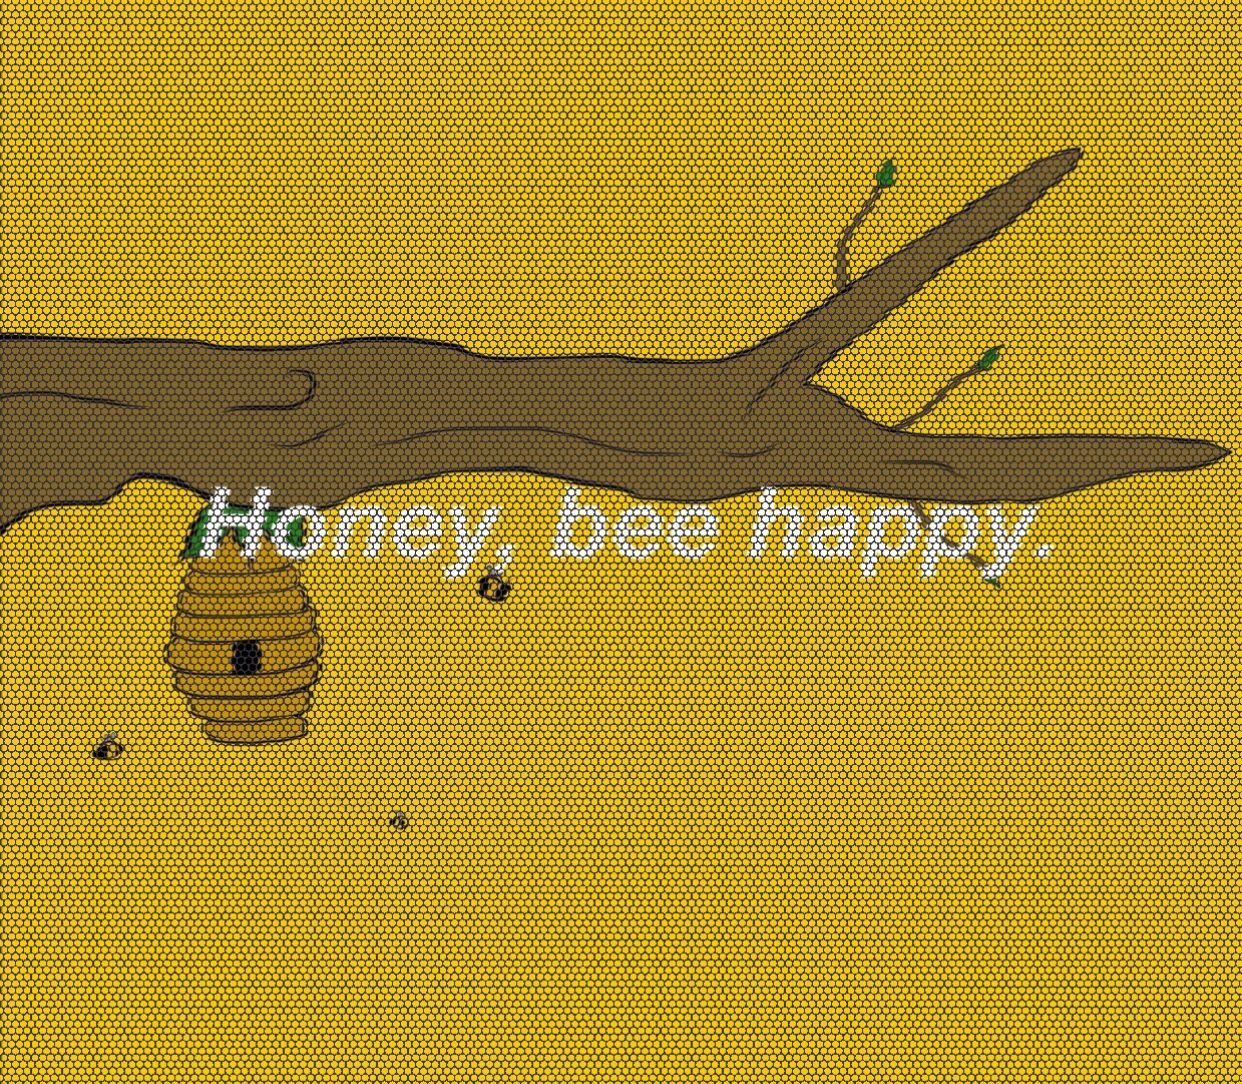 Honeybee Bee Yellow Aesthetic Background Edit Yellowaesthetic Yellow Aesthetic Happy Colors Bee Happy